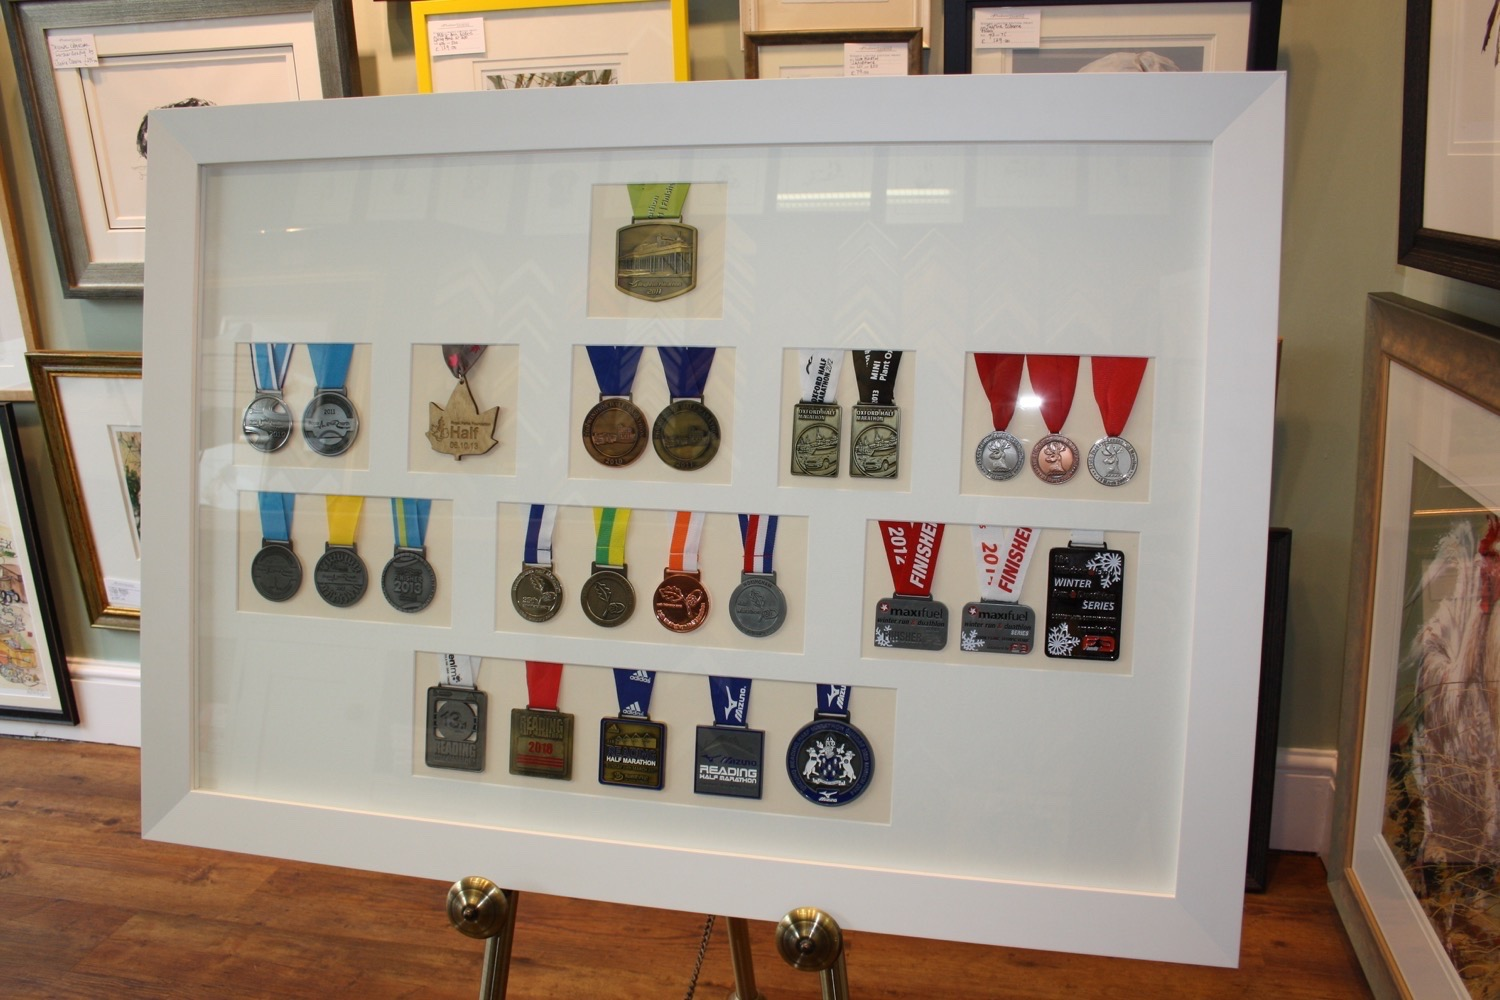 hampshire-picture-framing-medals-012.JPG